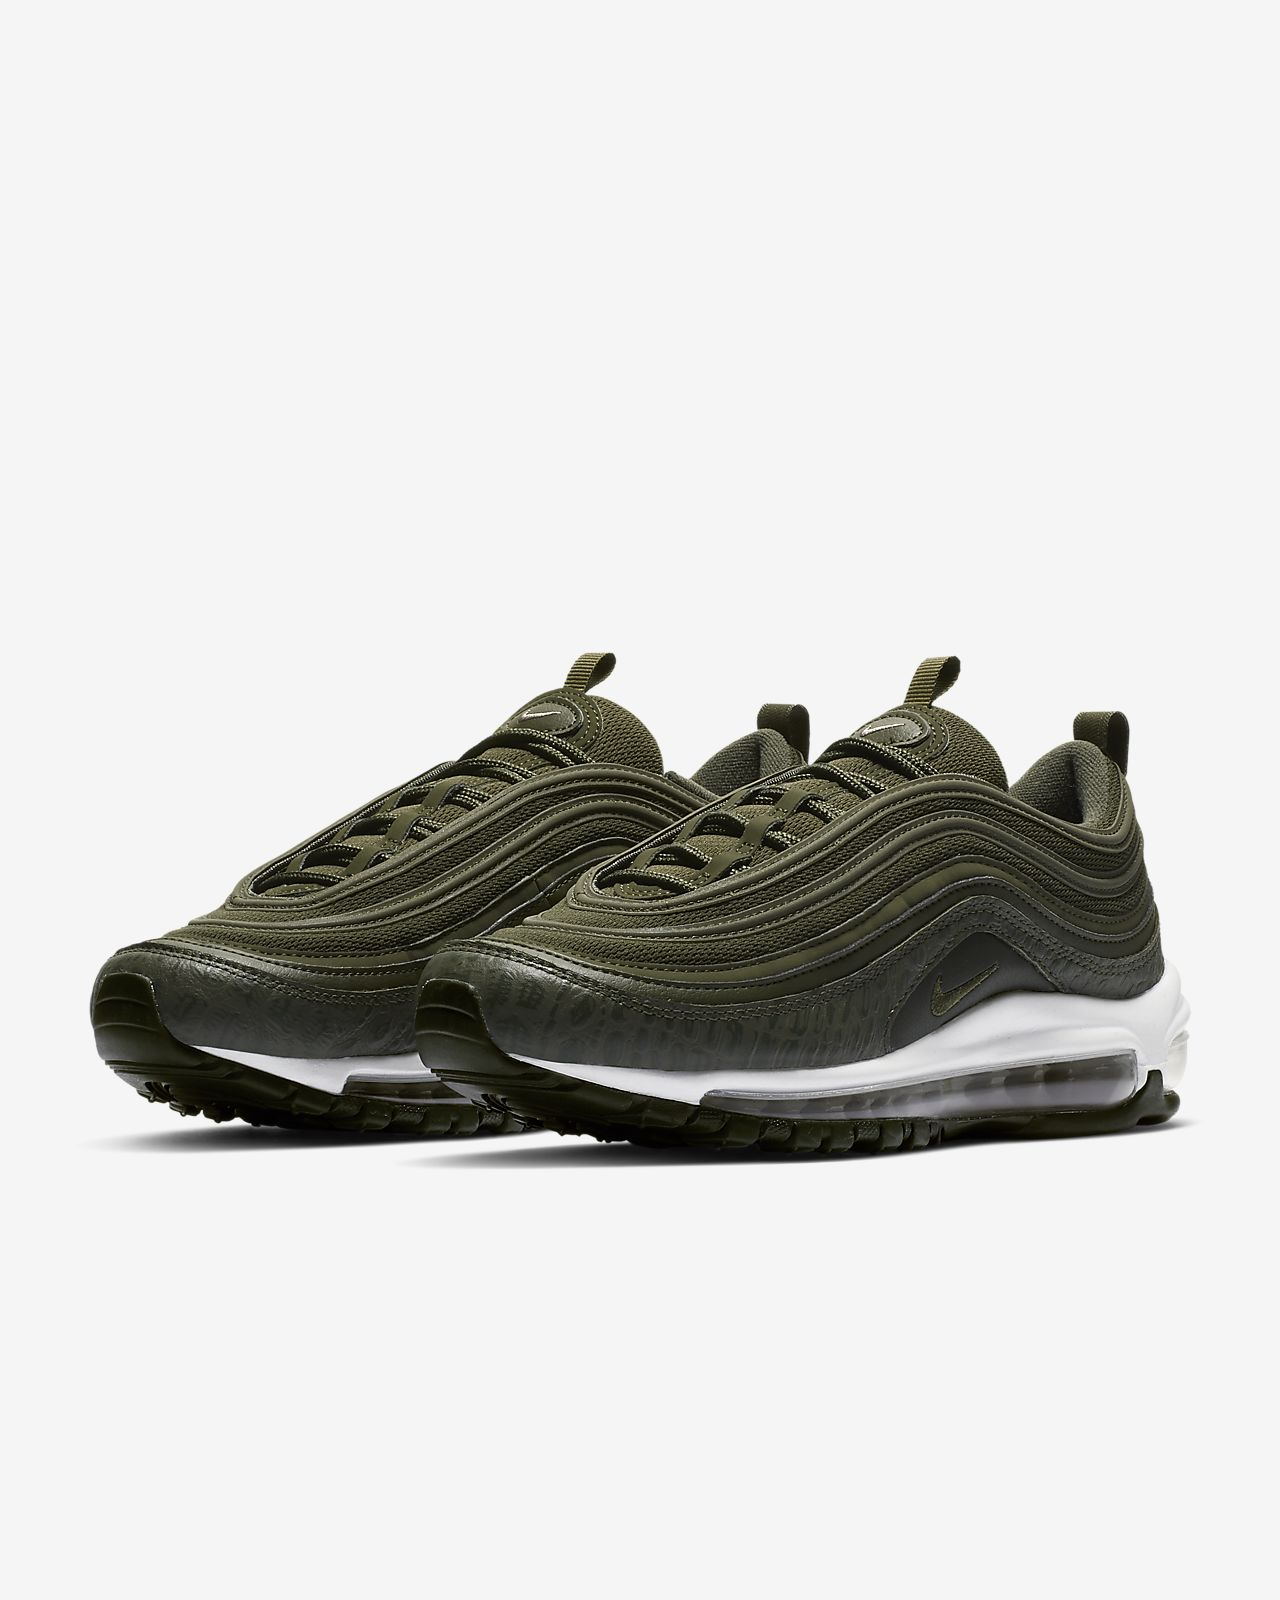 best website 7335d b7ae0 ... Nike Air Max 97 LX Zapatillas - Mujer